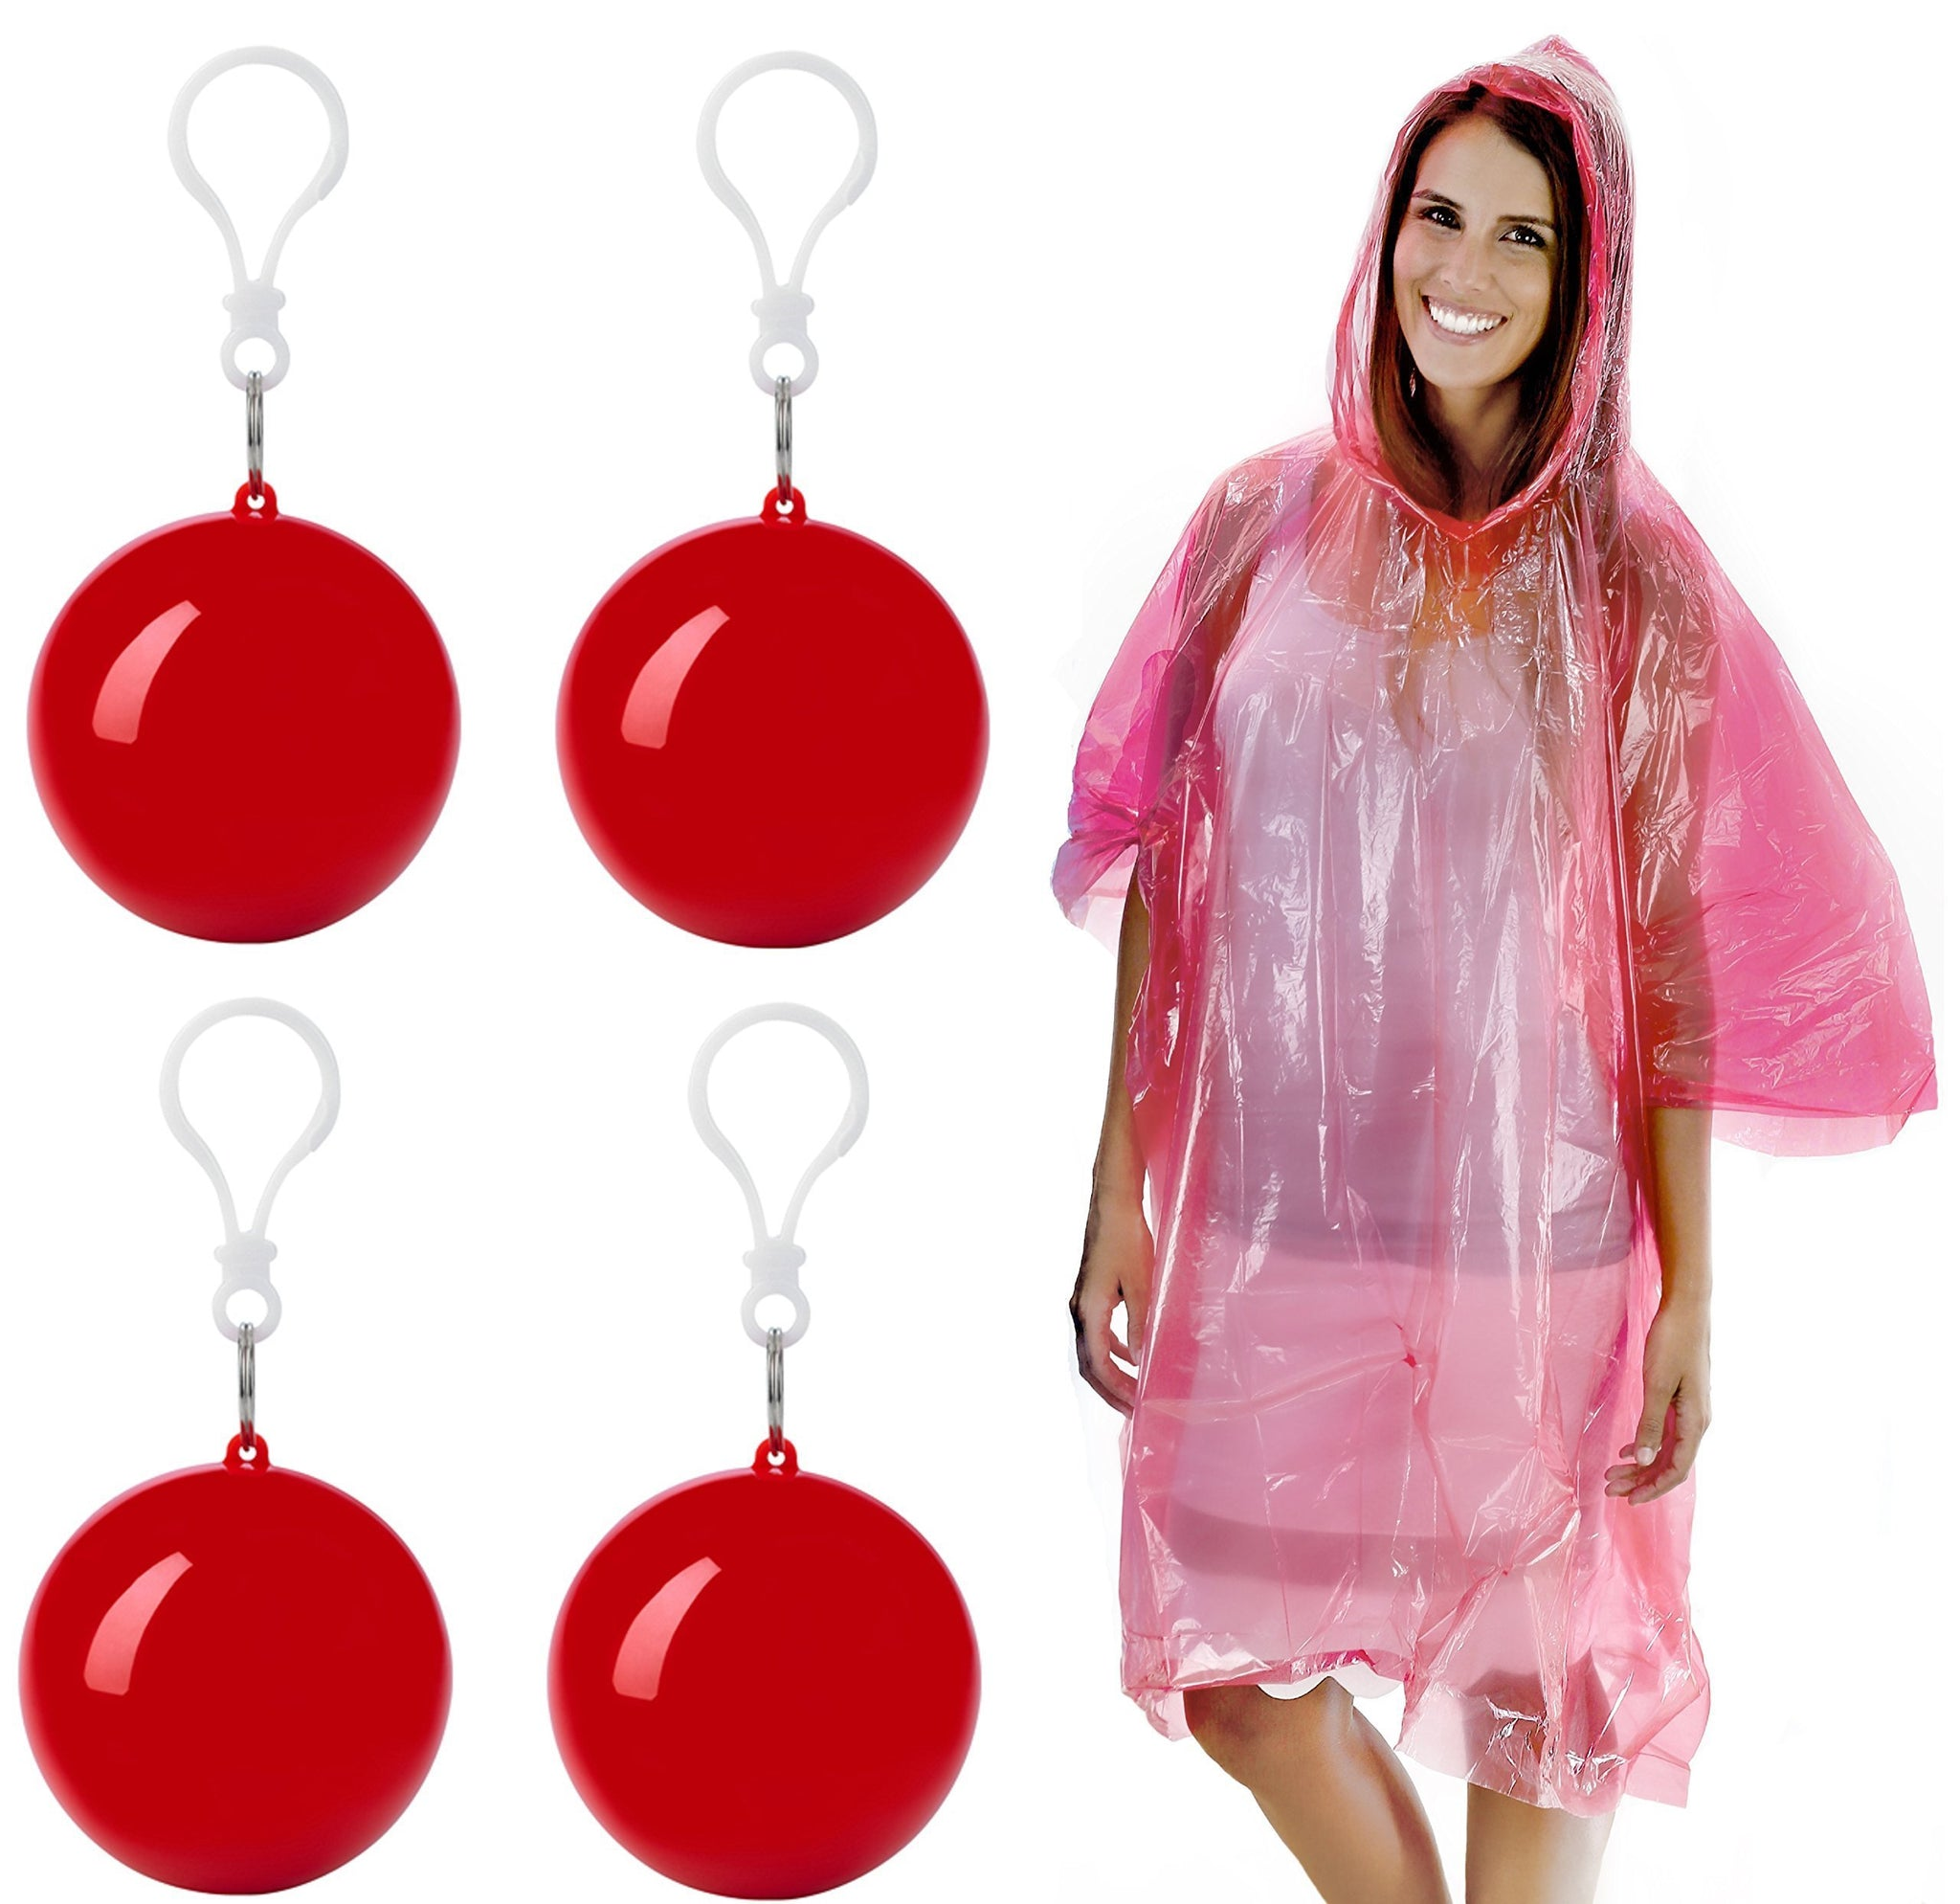 Discover the best emergency rain poncho with hood packaged in plastic keychain ball one size fits all commuter rain poncho survival kit accessory for travel backpacking picnics camping sporting outdoor events 4pk